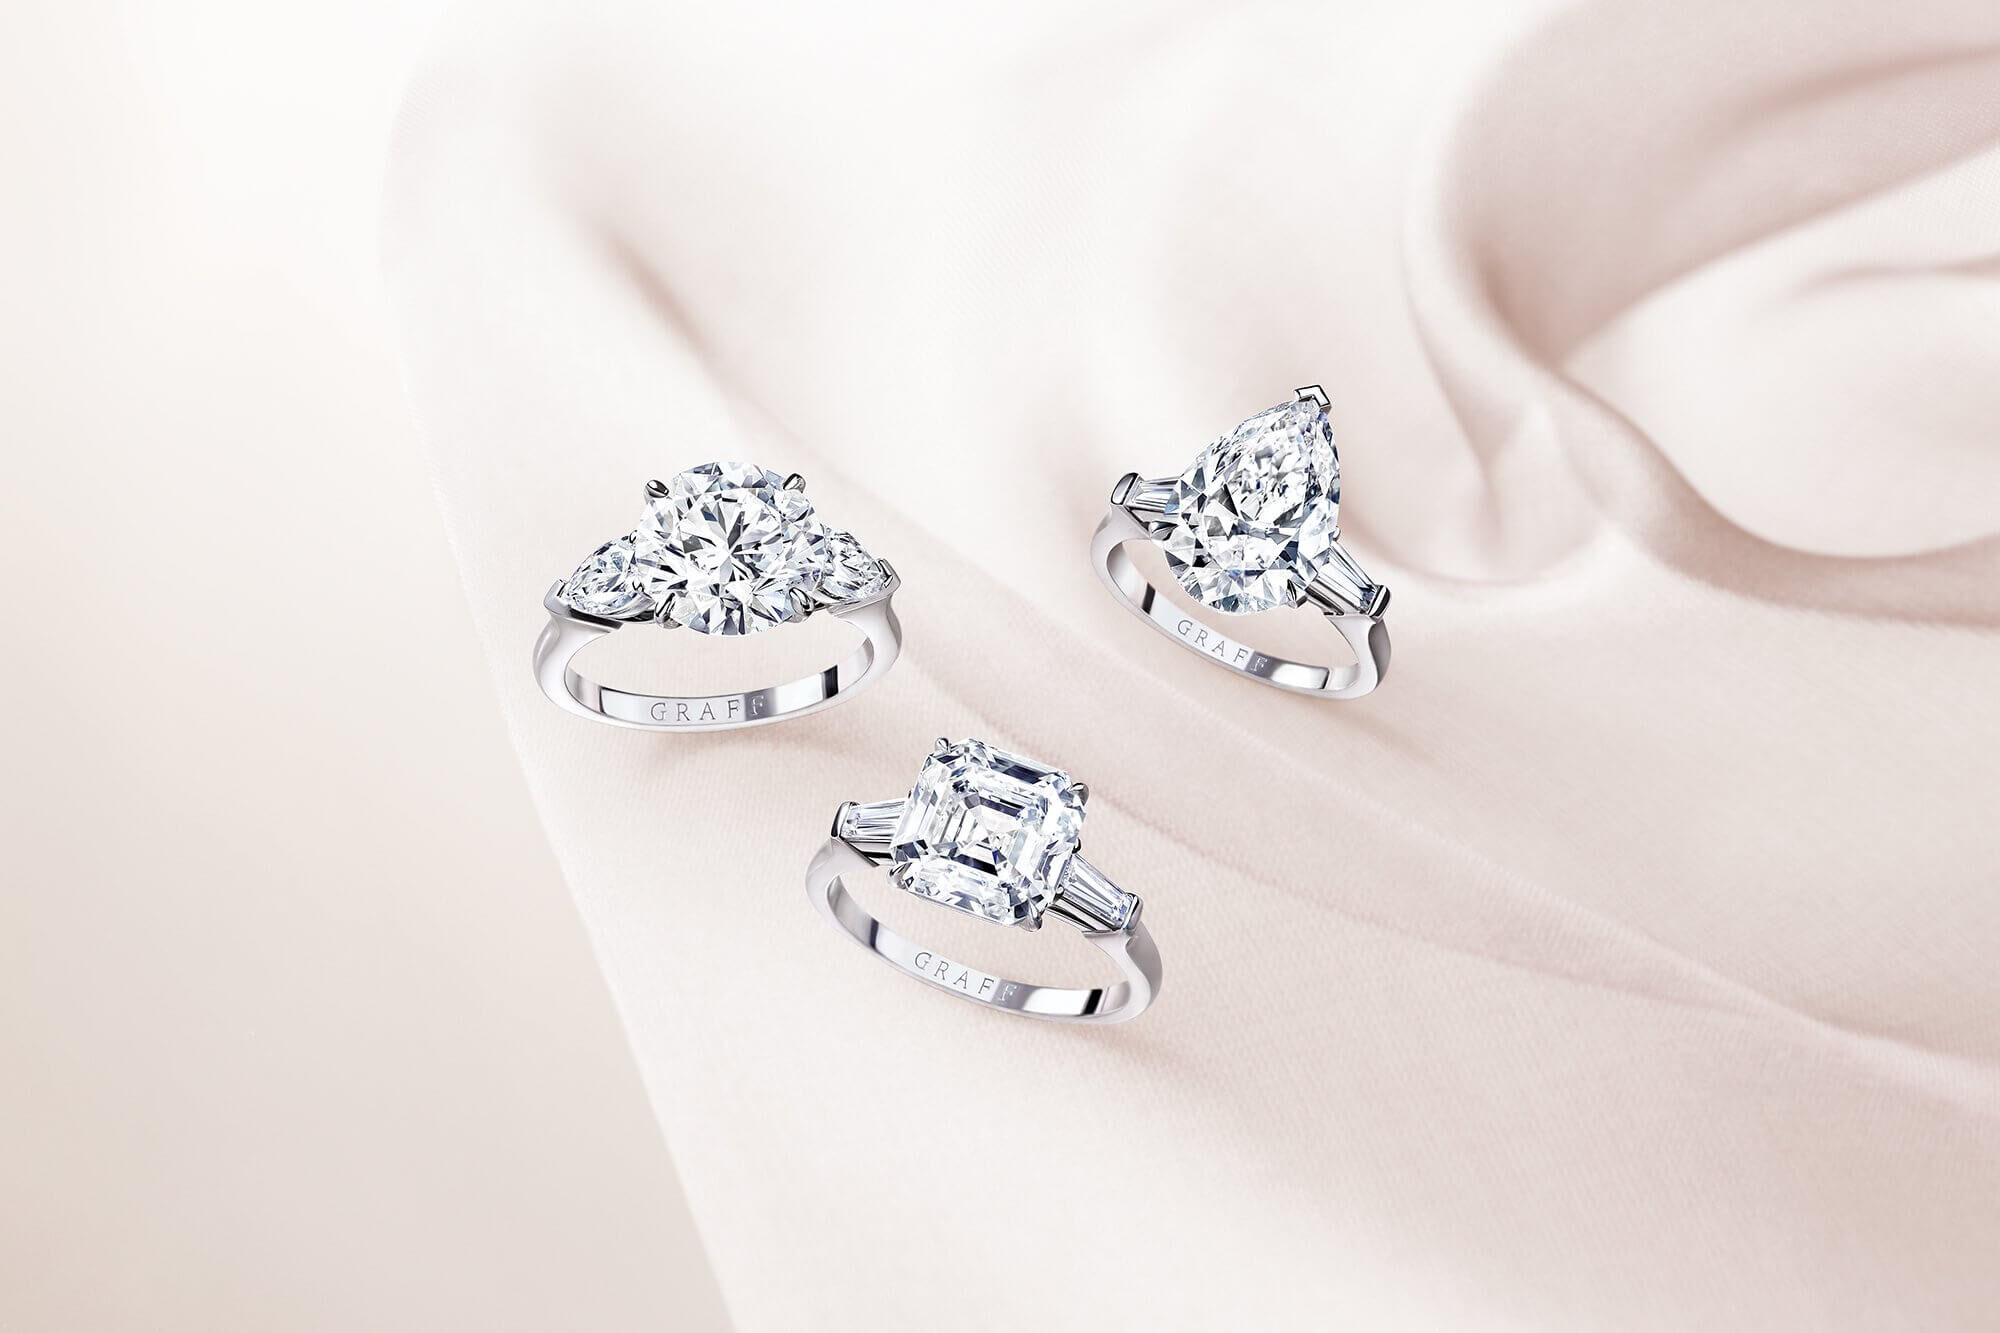 Three promise diamond engagement rings by Graff on a silk fabric